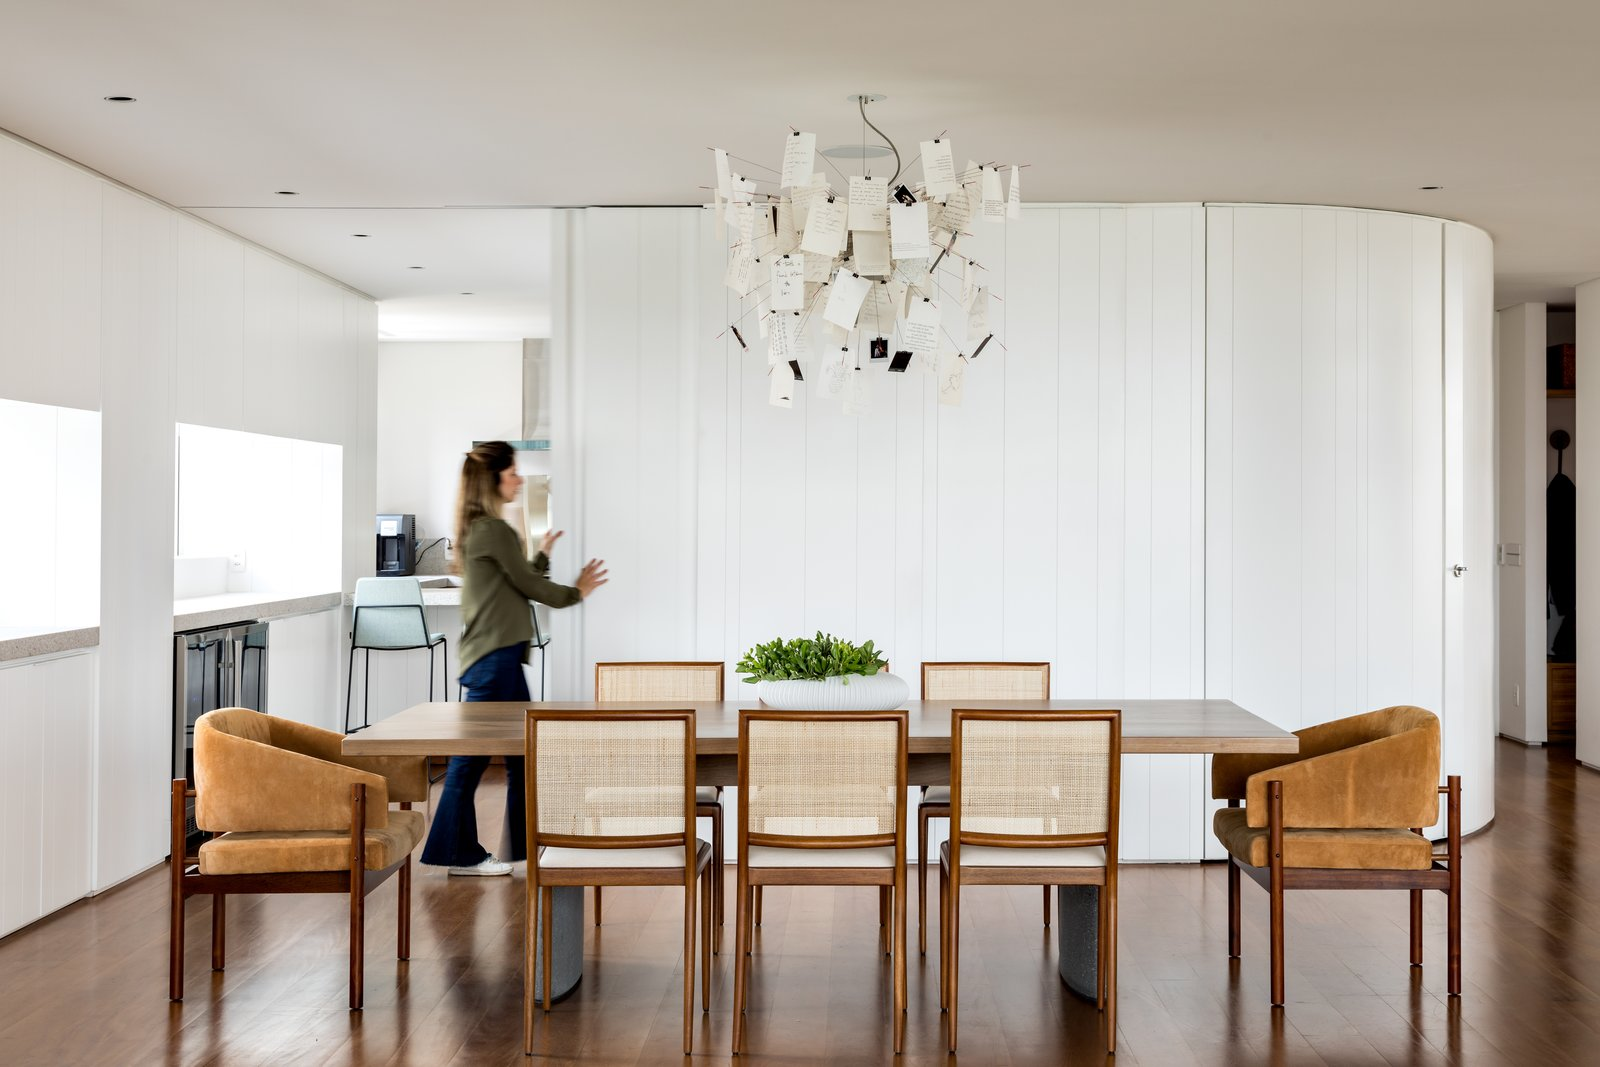 Articles about 5 striking dining spaces on Dwell.com